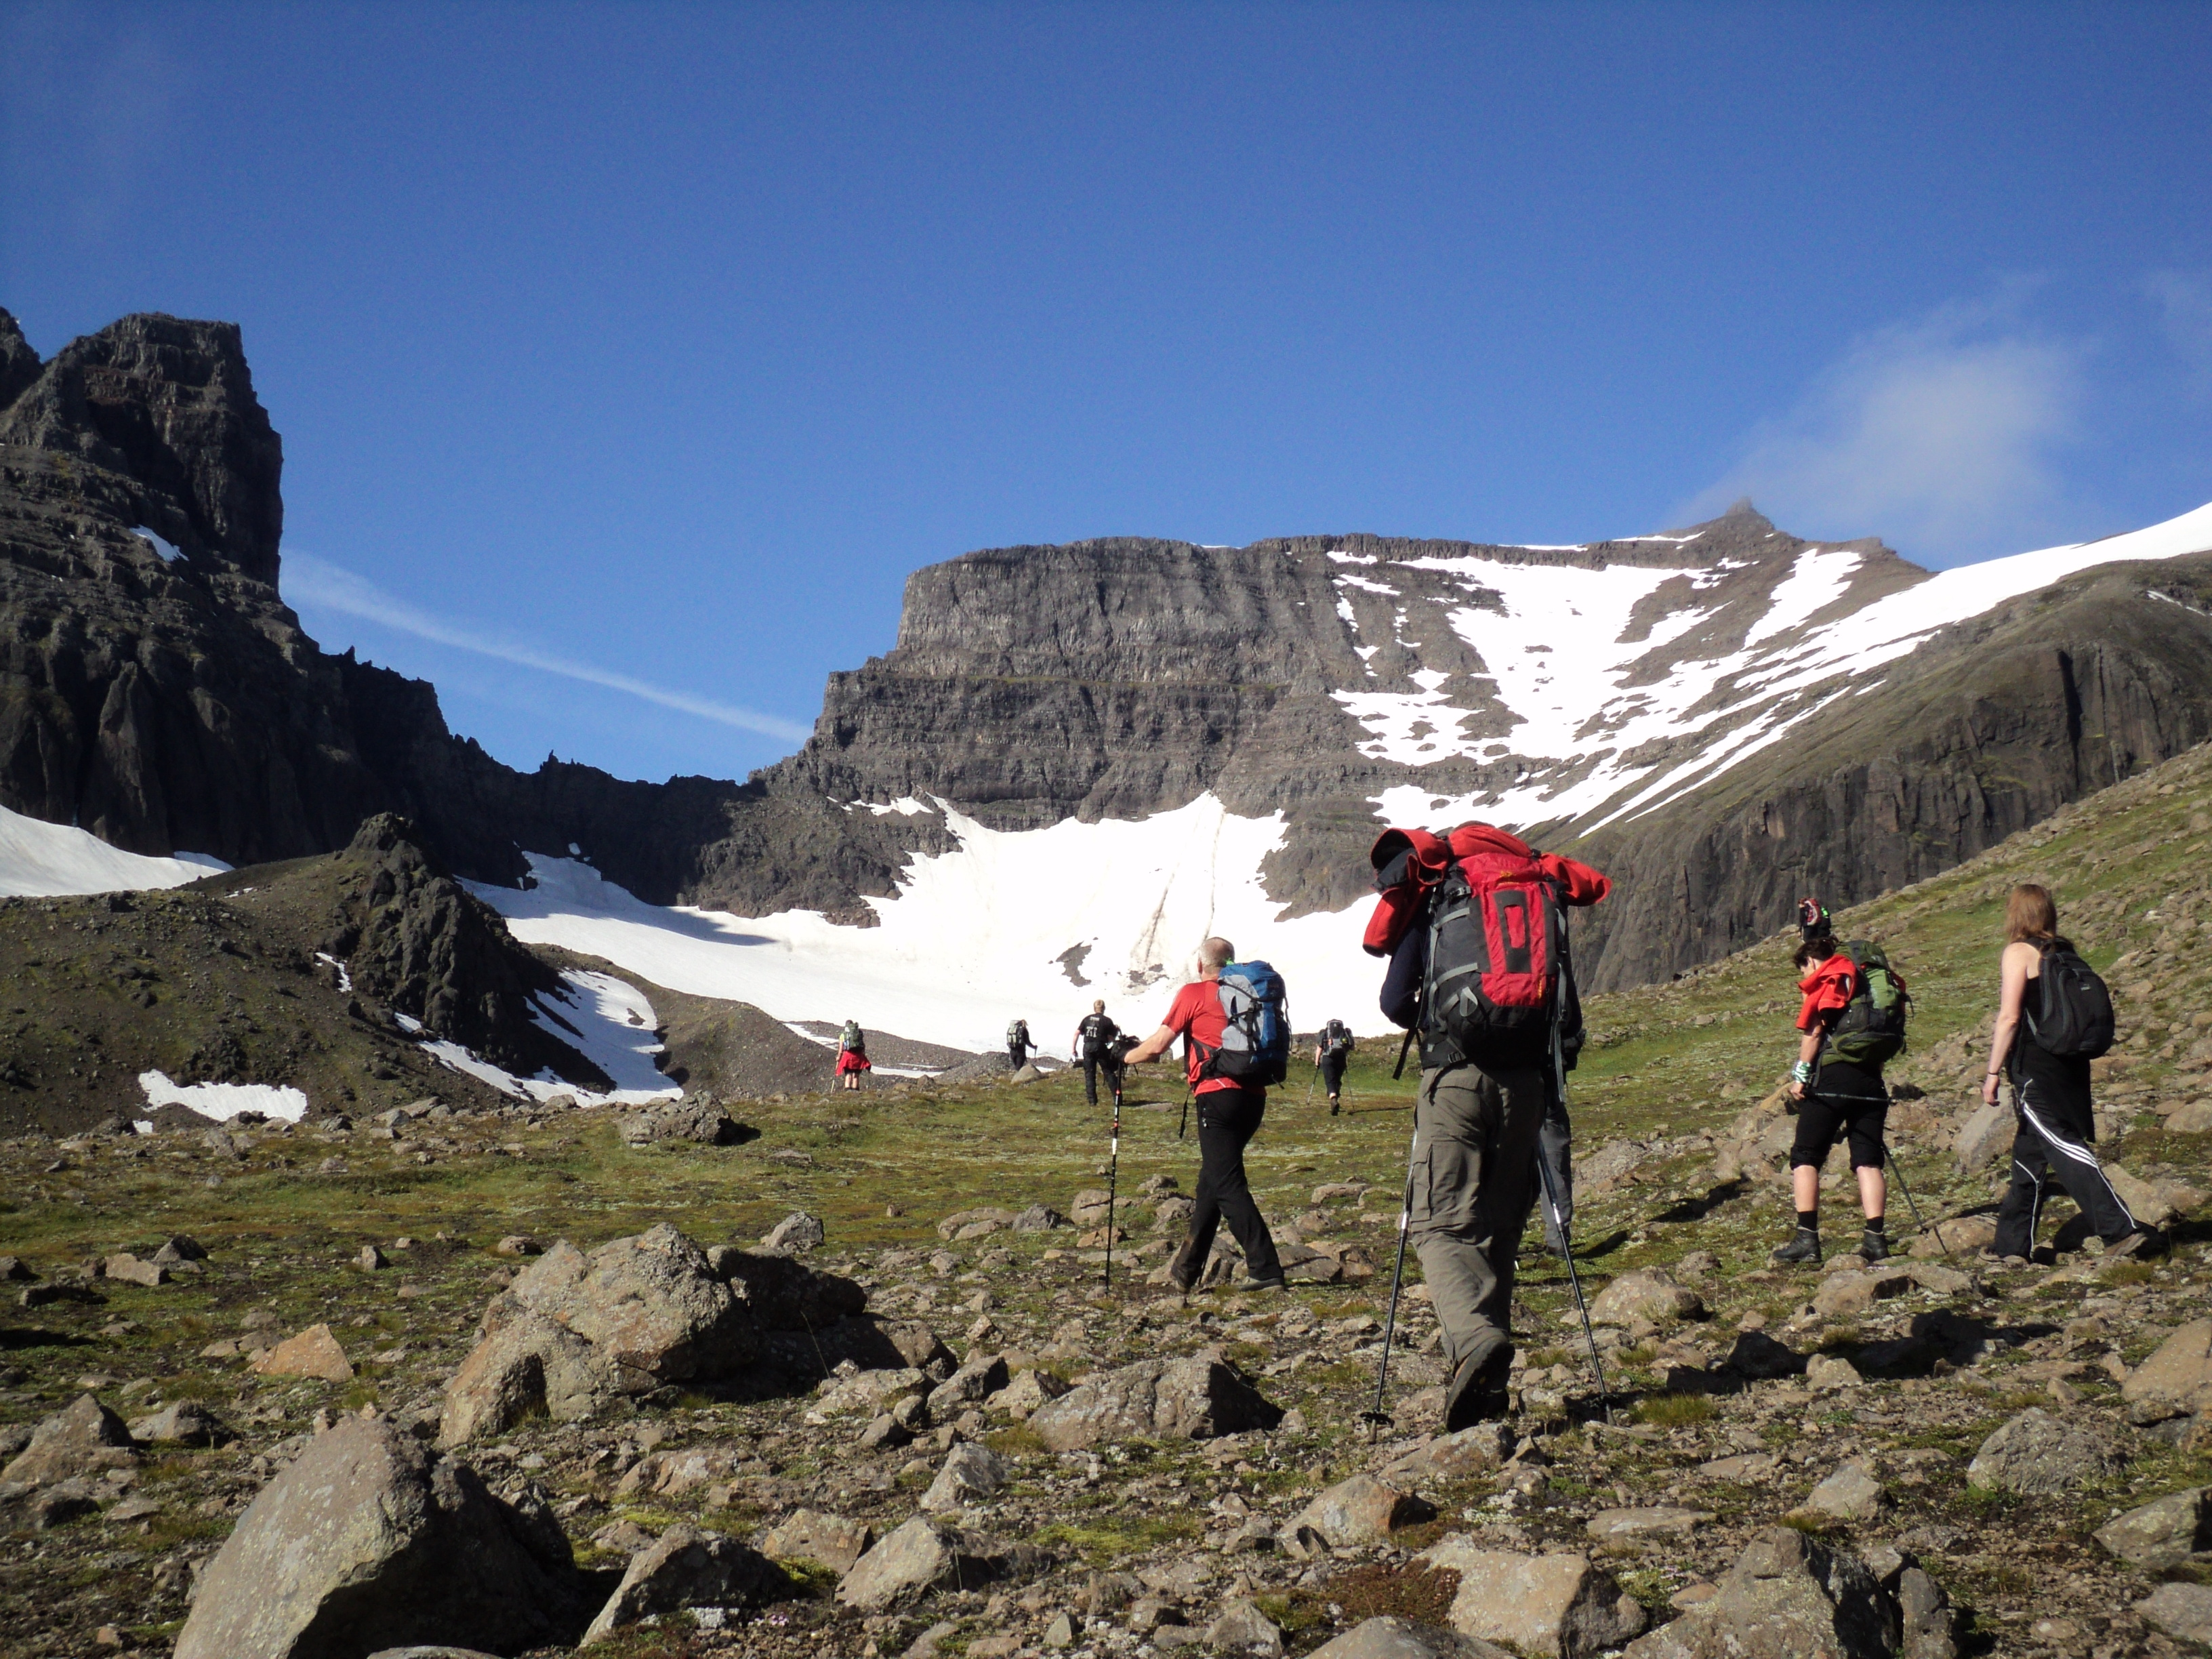 Scenic 11 Hour Hiking Tour of Mt Dyrfjoll with Transfer from Egilsstadir